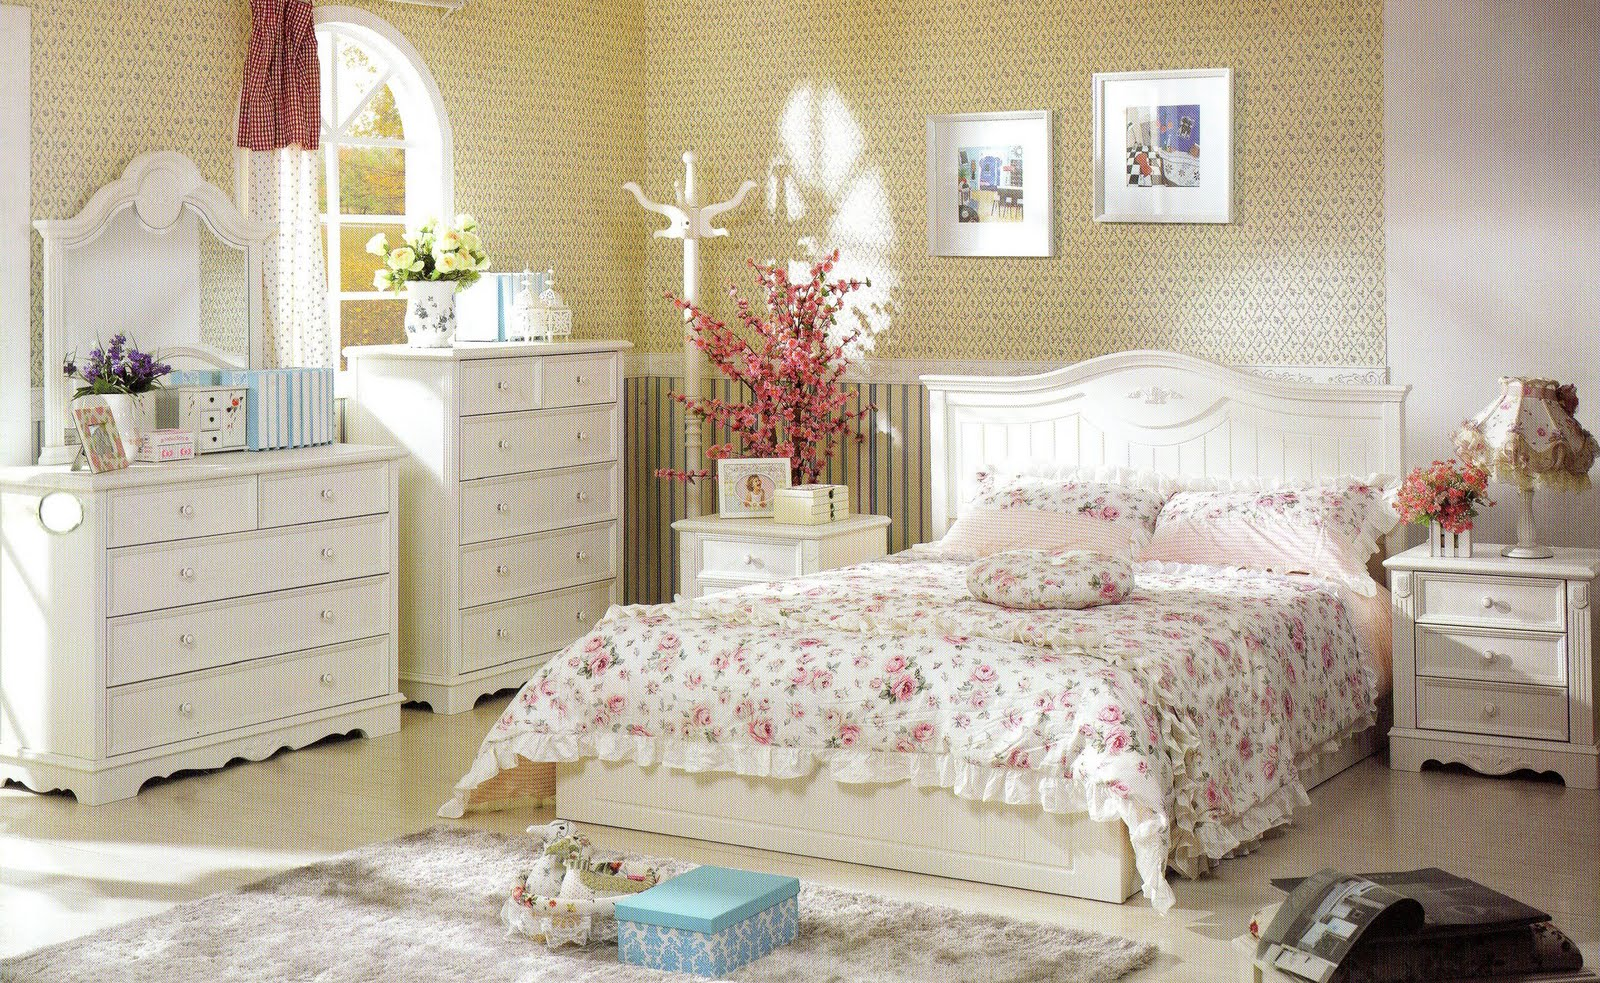 Fsd new arrival of our beautiful and elegant french style for New look bedroom ideas